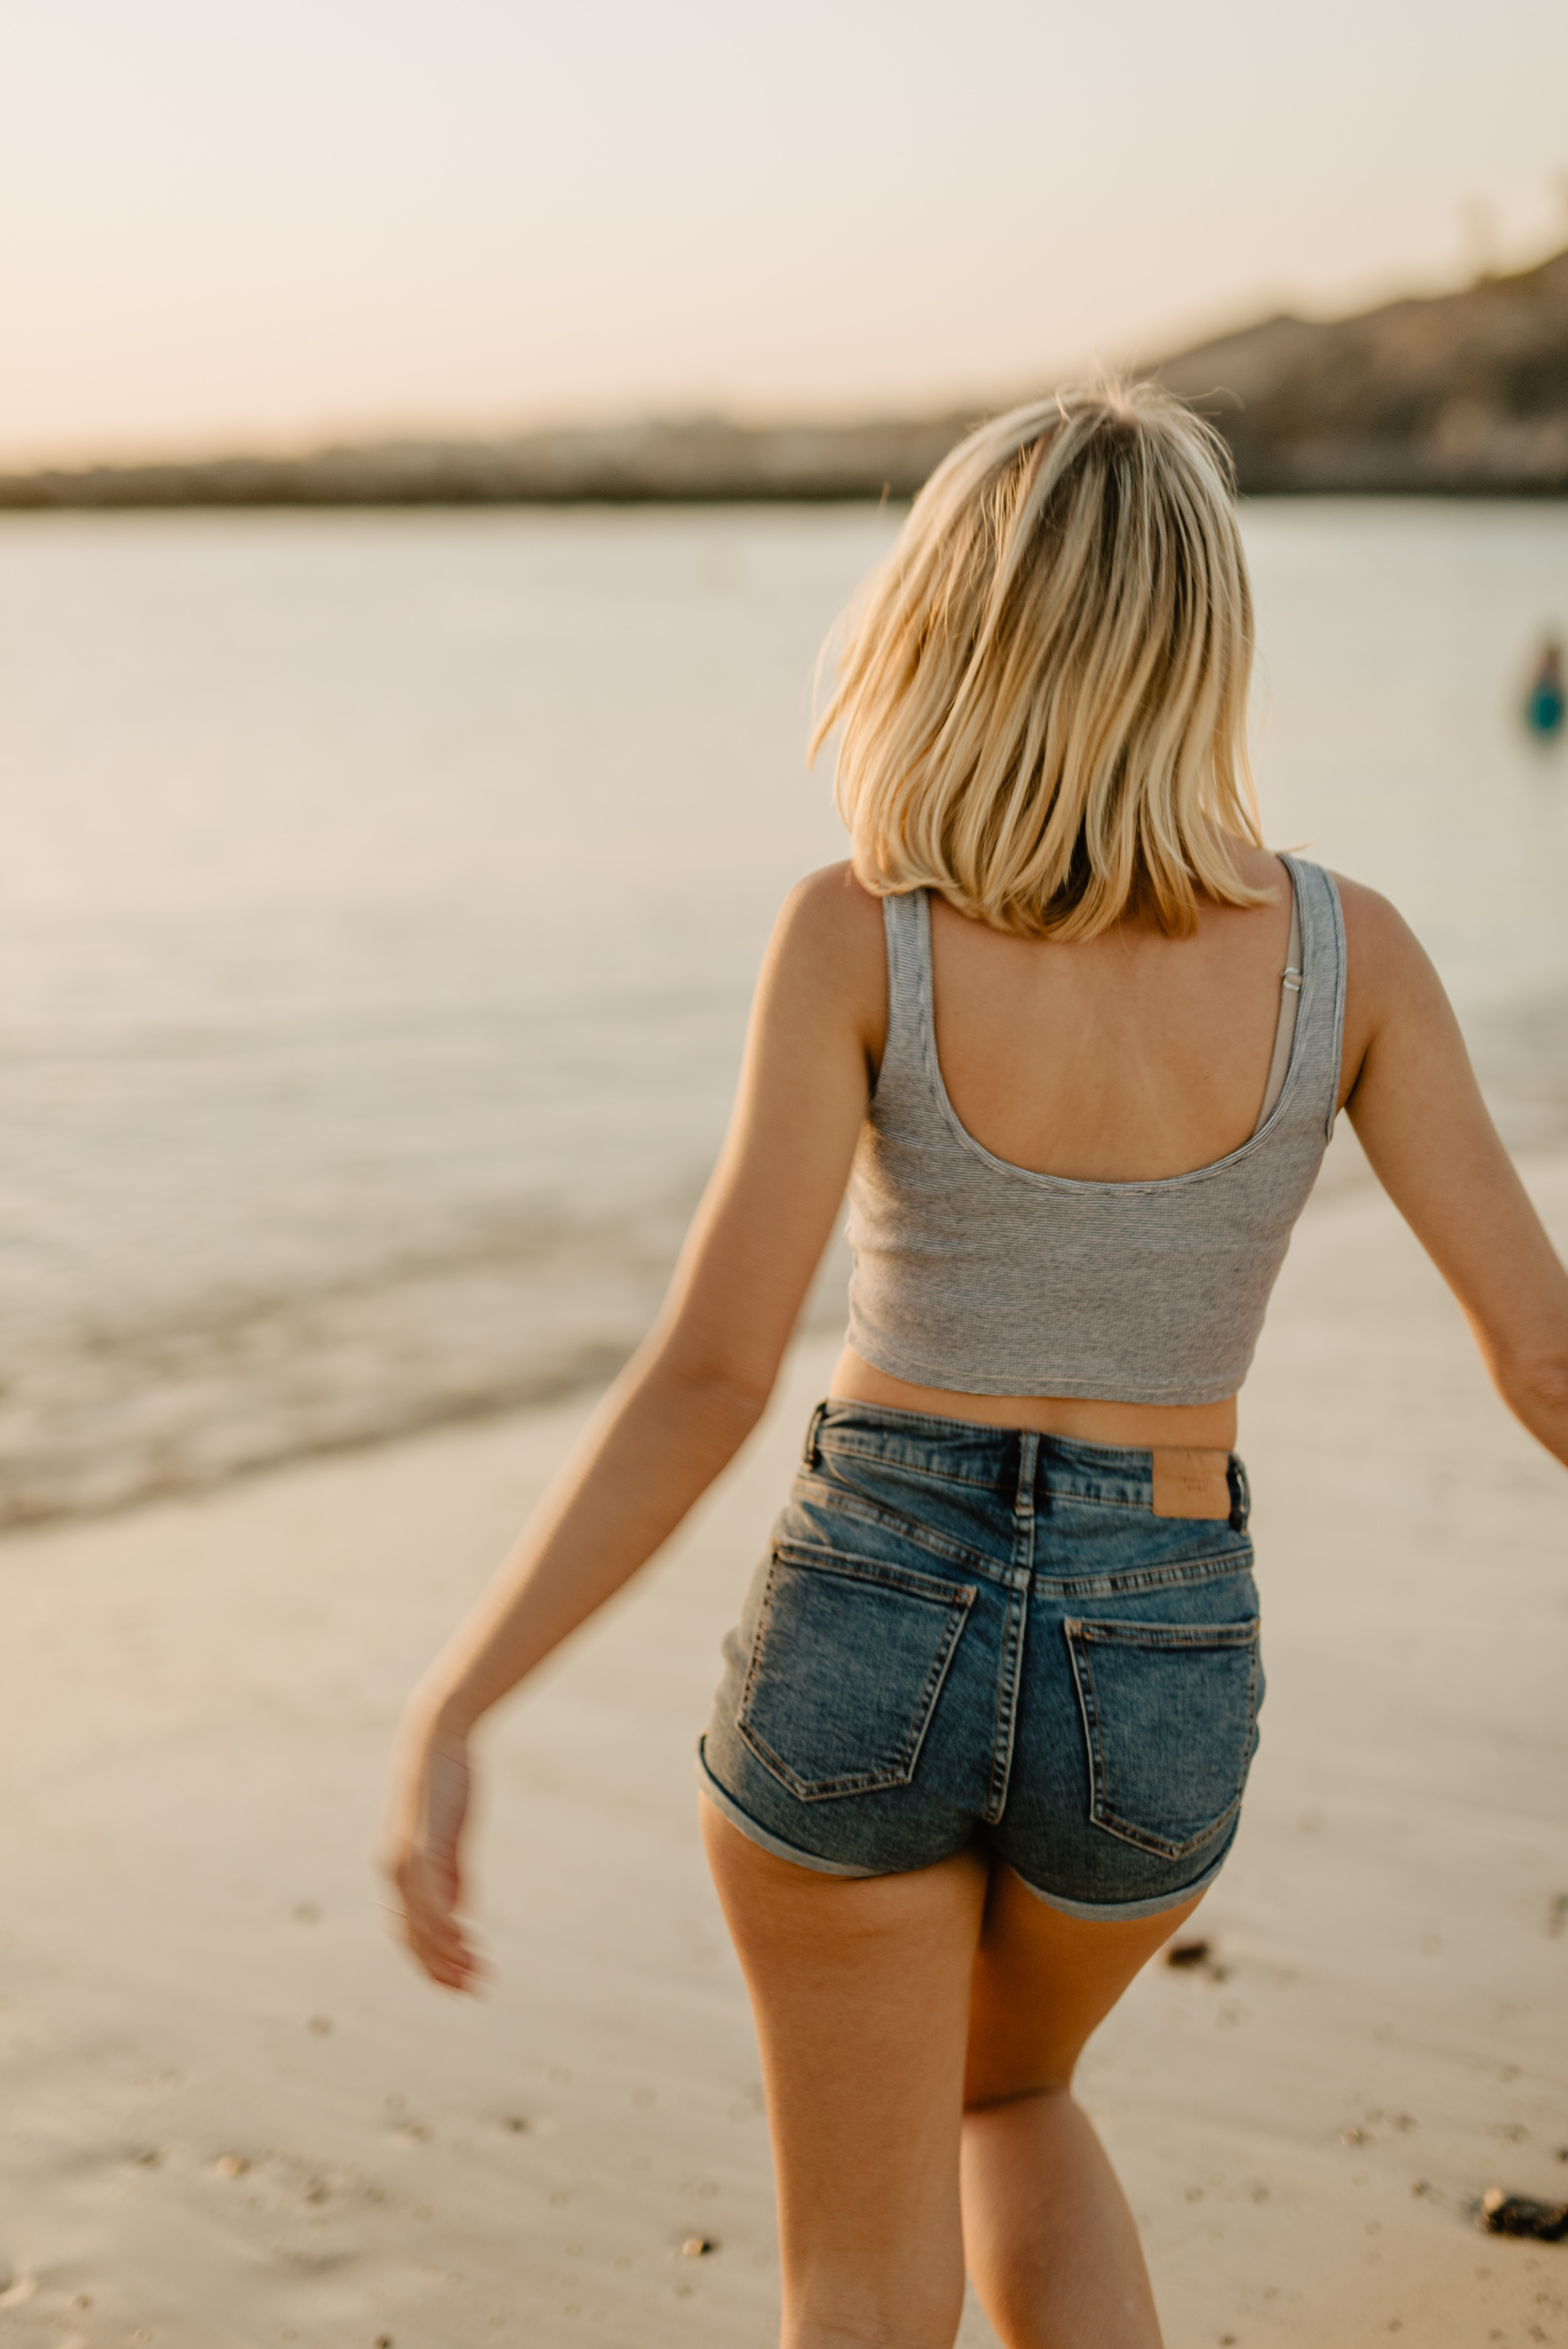 Shorts jeans com regata (Foto: Esther Driehaus/Unsplash)